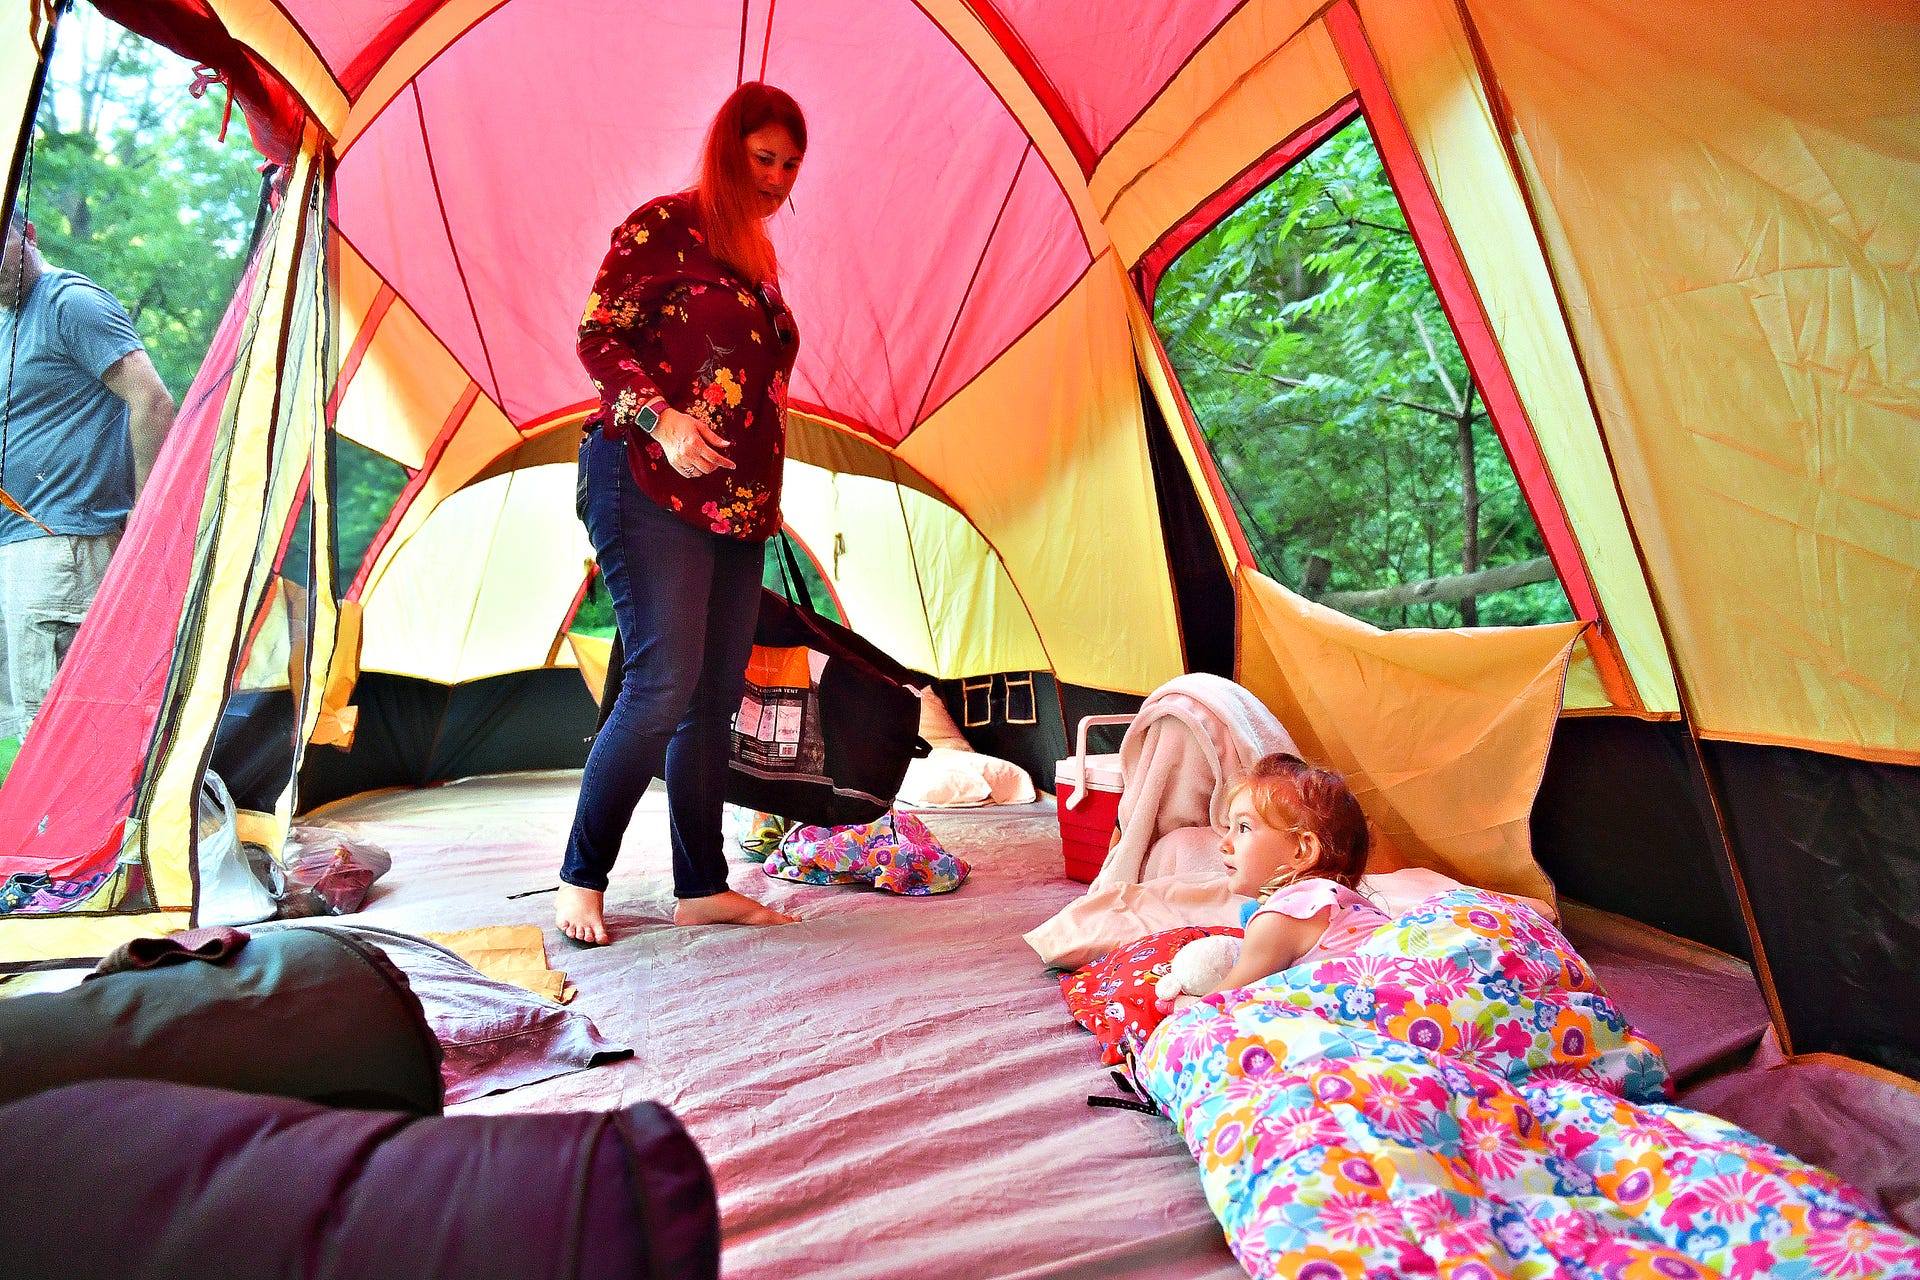 PHOTOS: Summer Solstice Campout at Nixon County Park